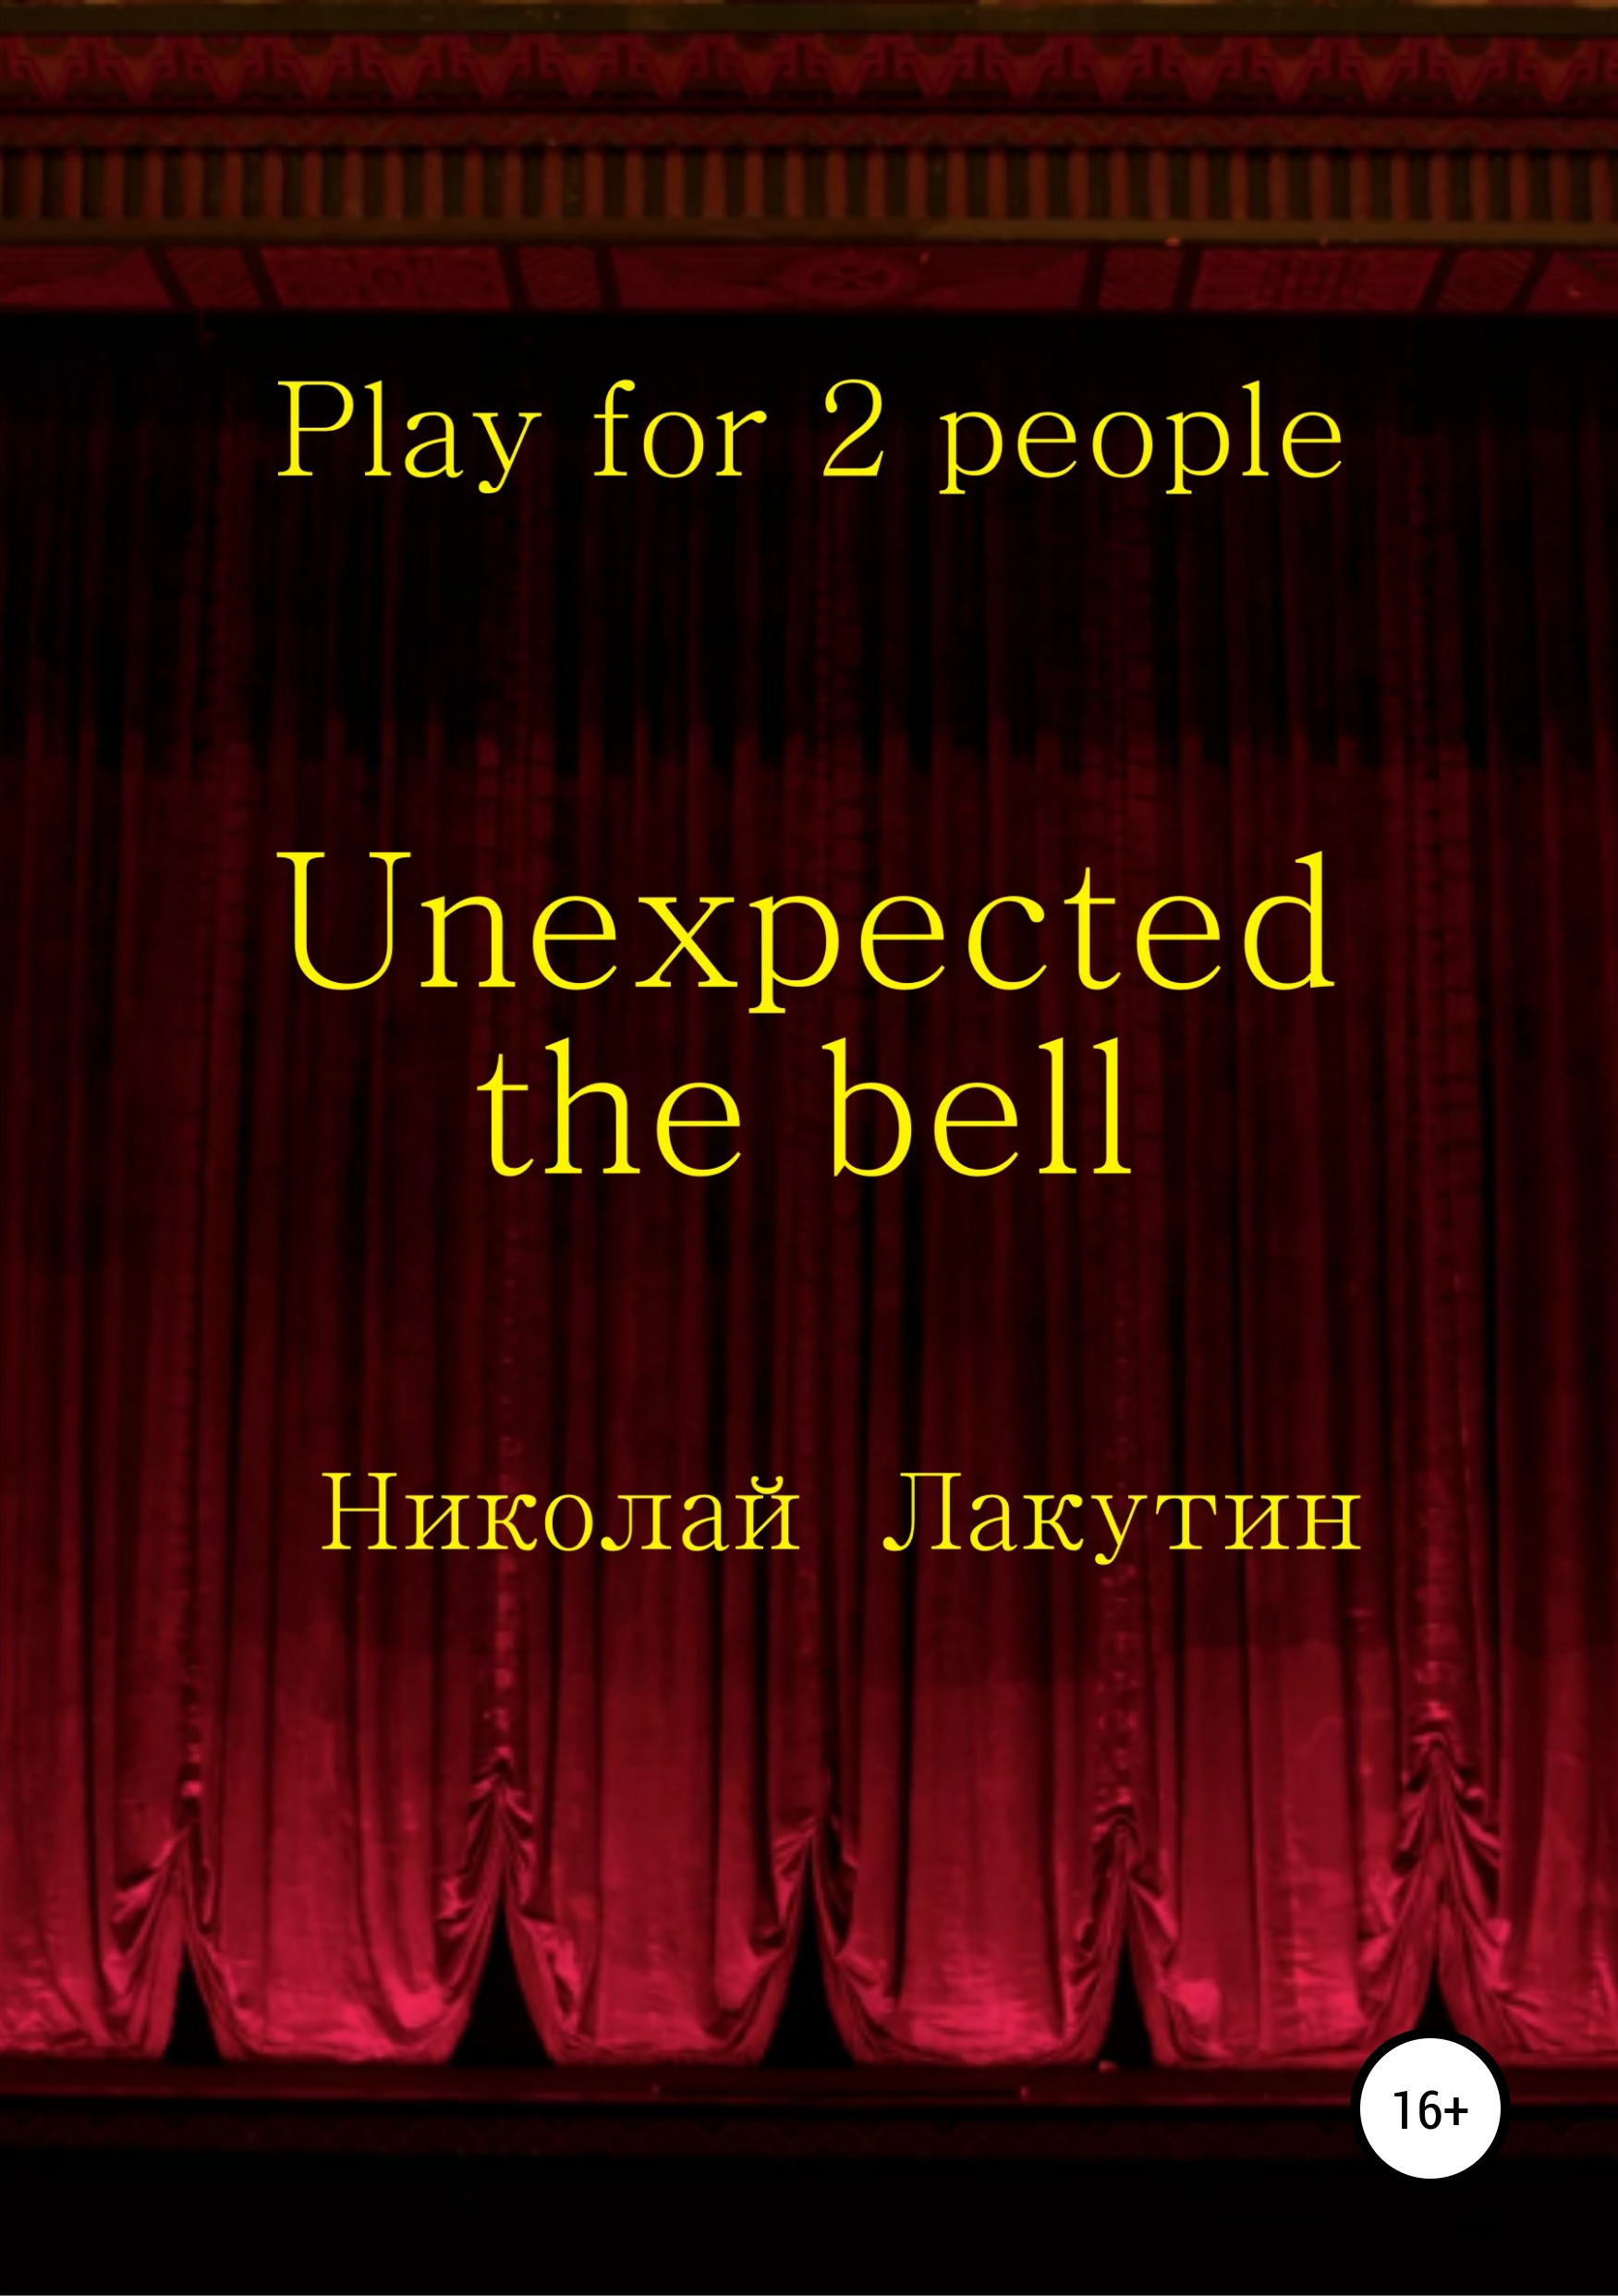 Unexpected the bell. Play for 2 people